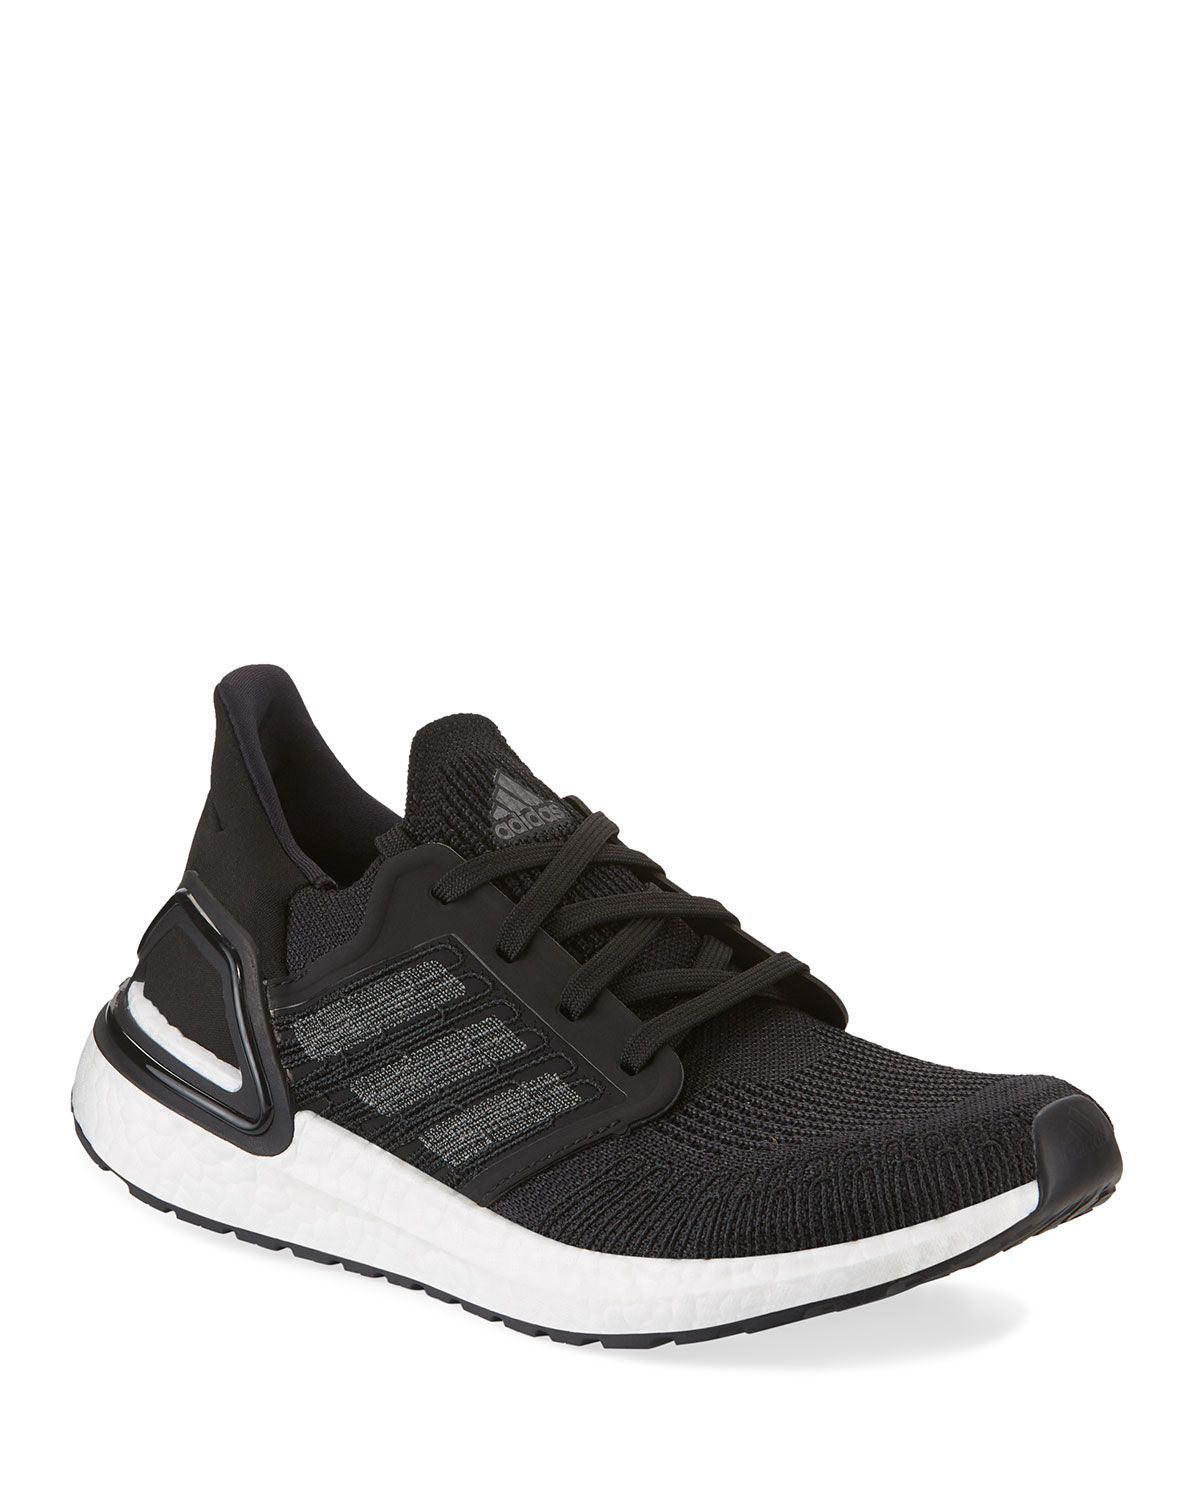 ADIDAS ORIGINALS ULTRA BOOST STRETCH-KNIT TRAINER SNEAKERS ...